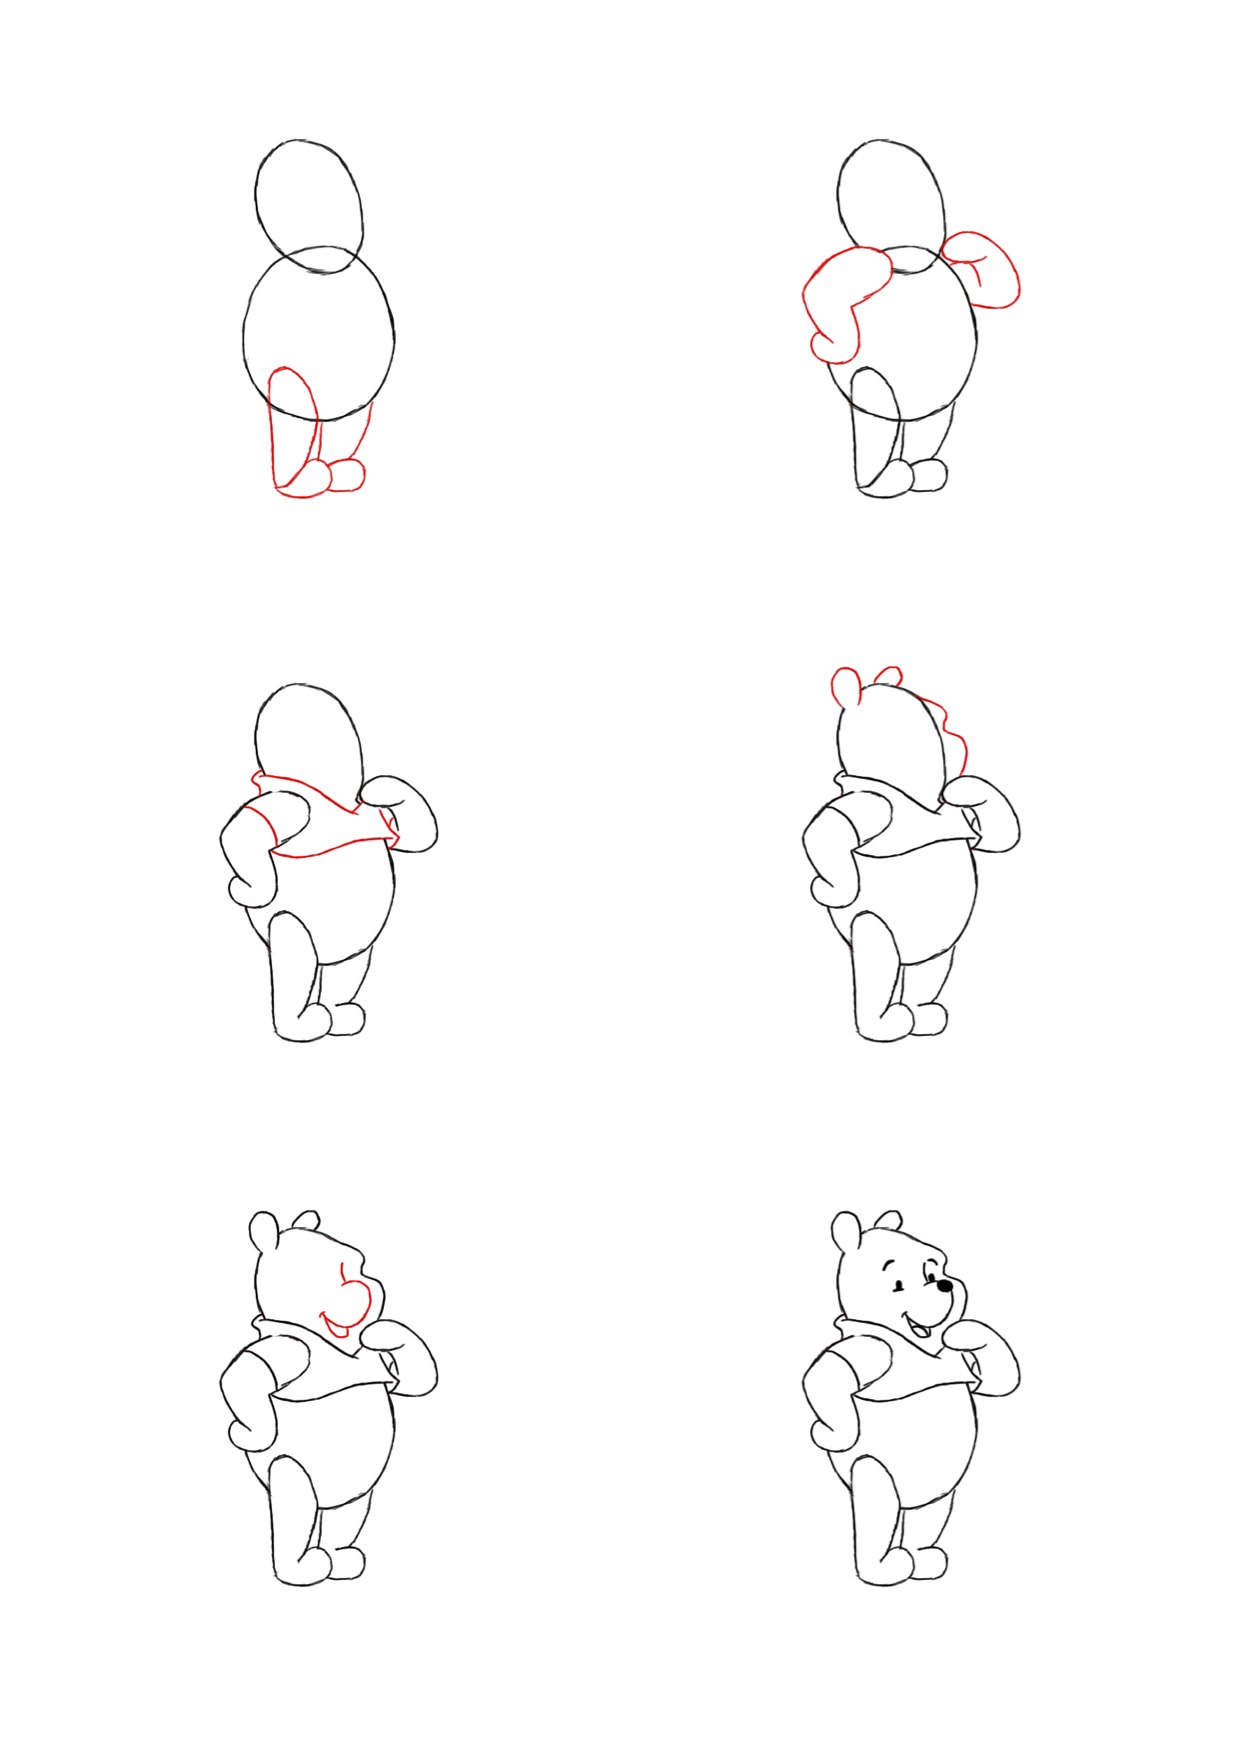 How To Draw Winnie The Pooh Characters Step By Step How to draw Winnie The Pooh Winnie the pooh drawing